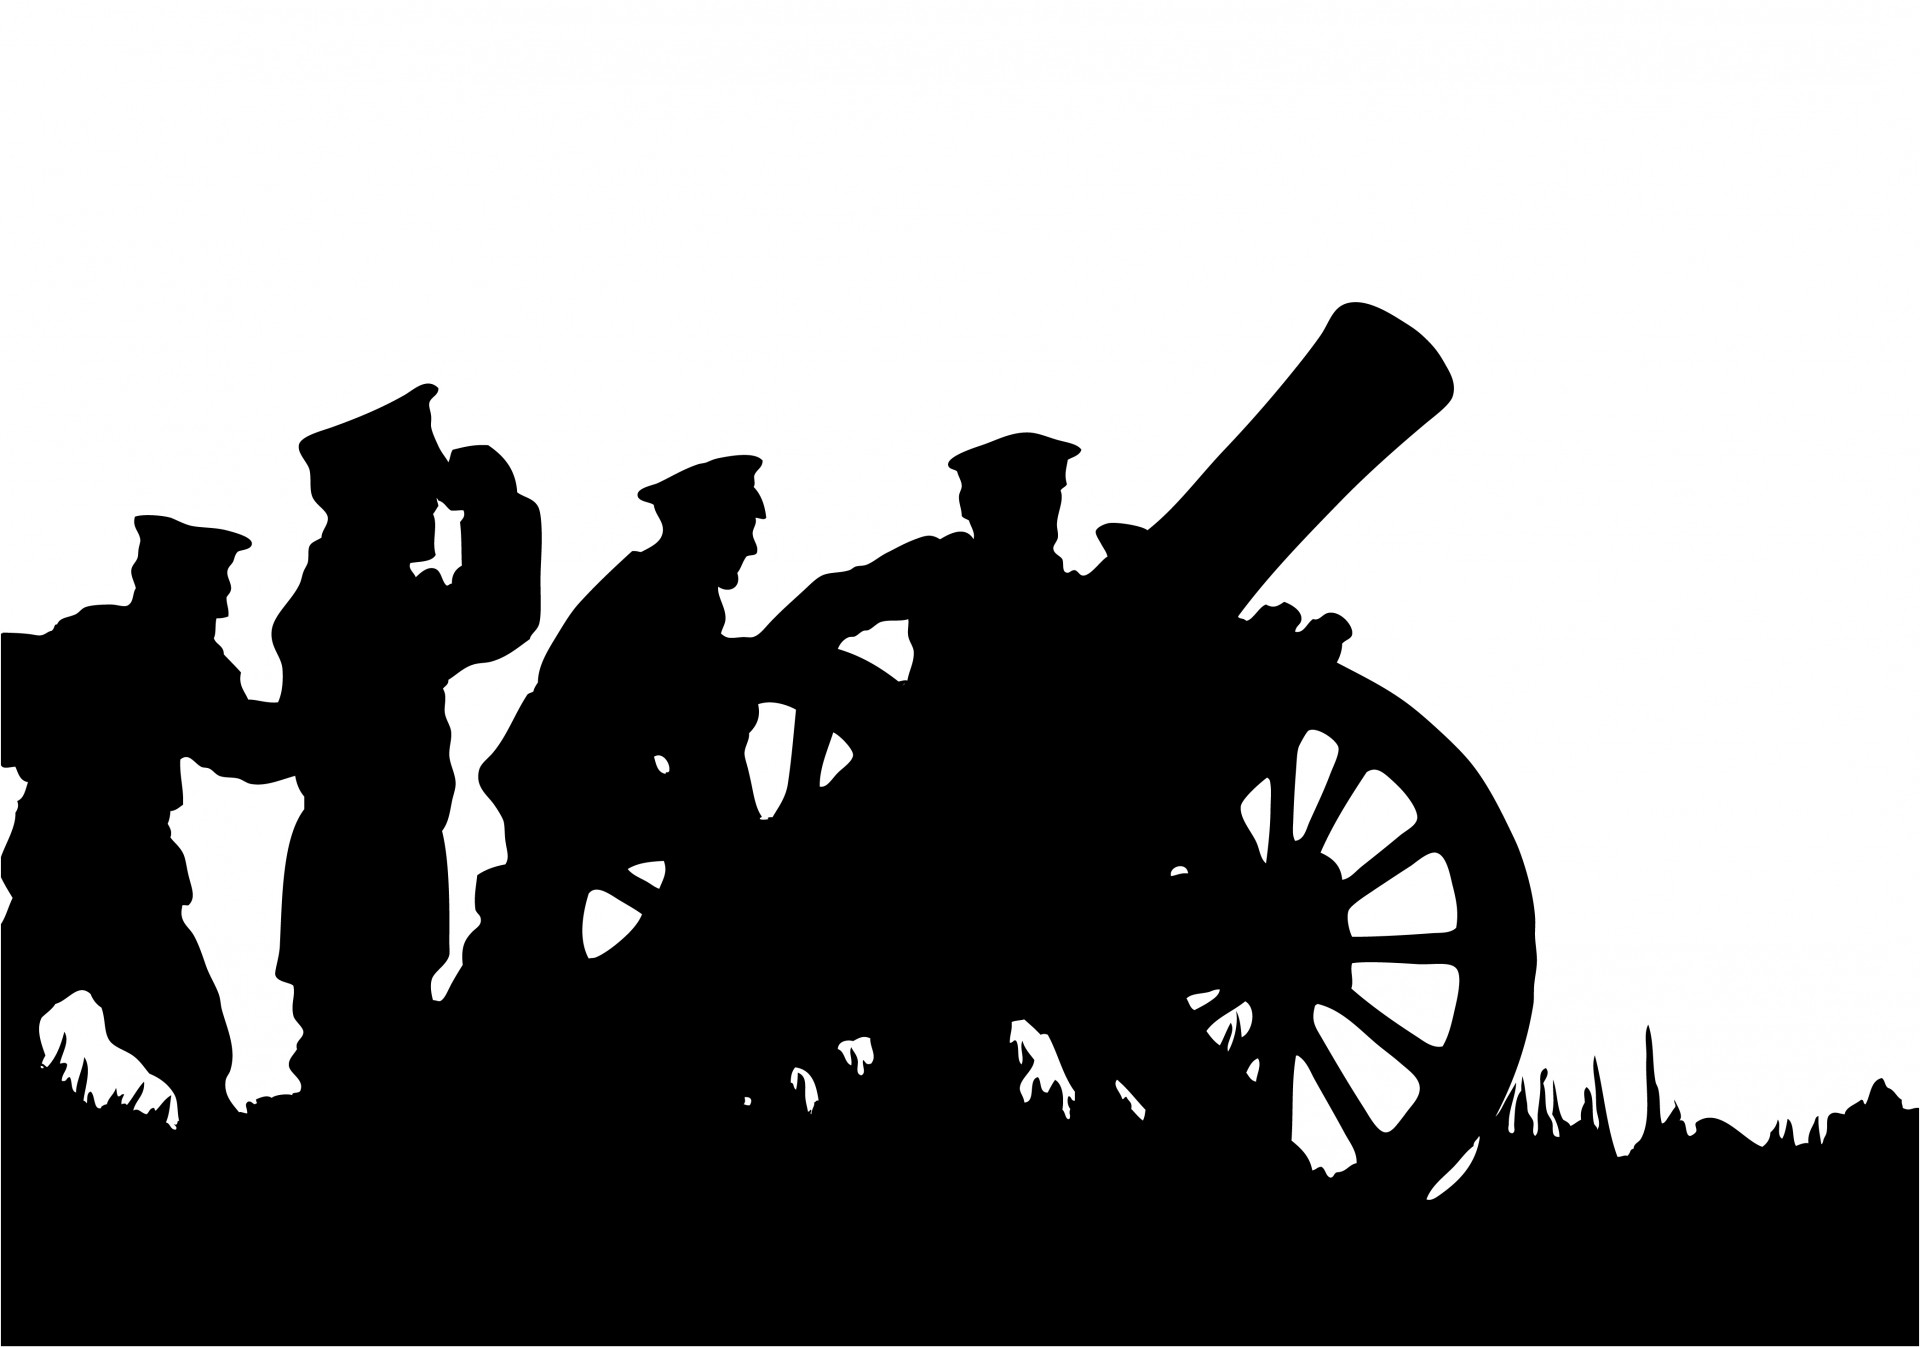 Soldiers clipart. With canon free stock